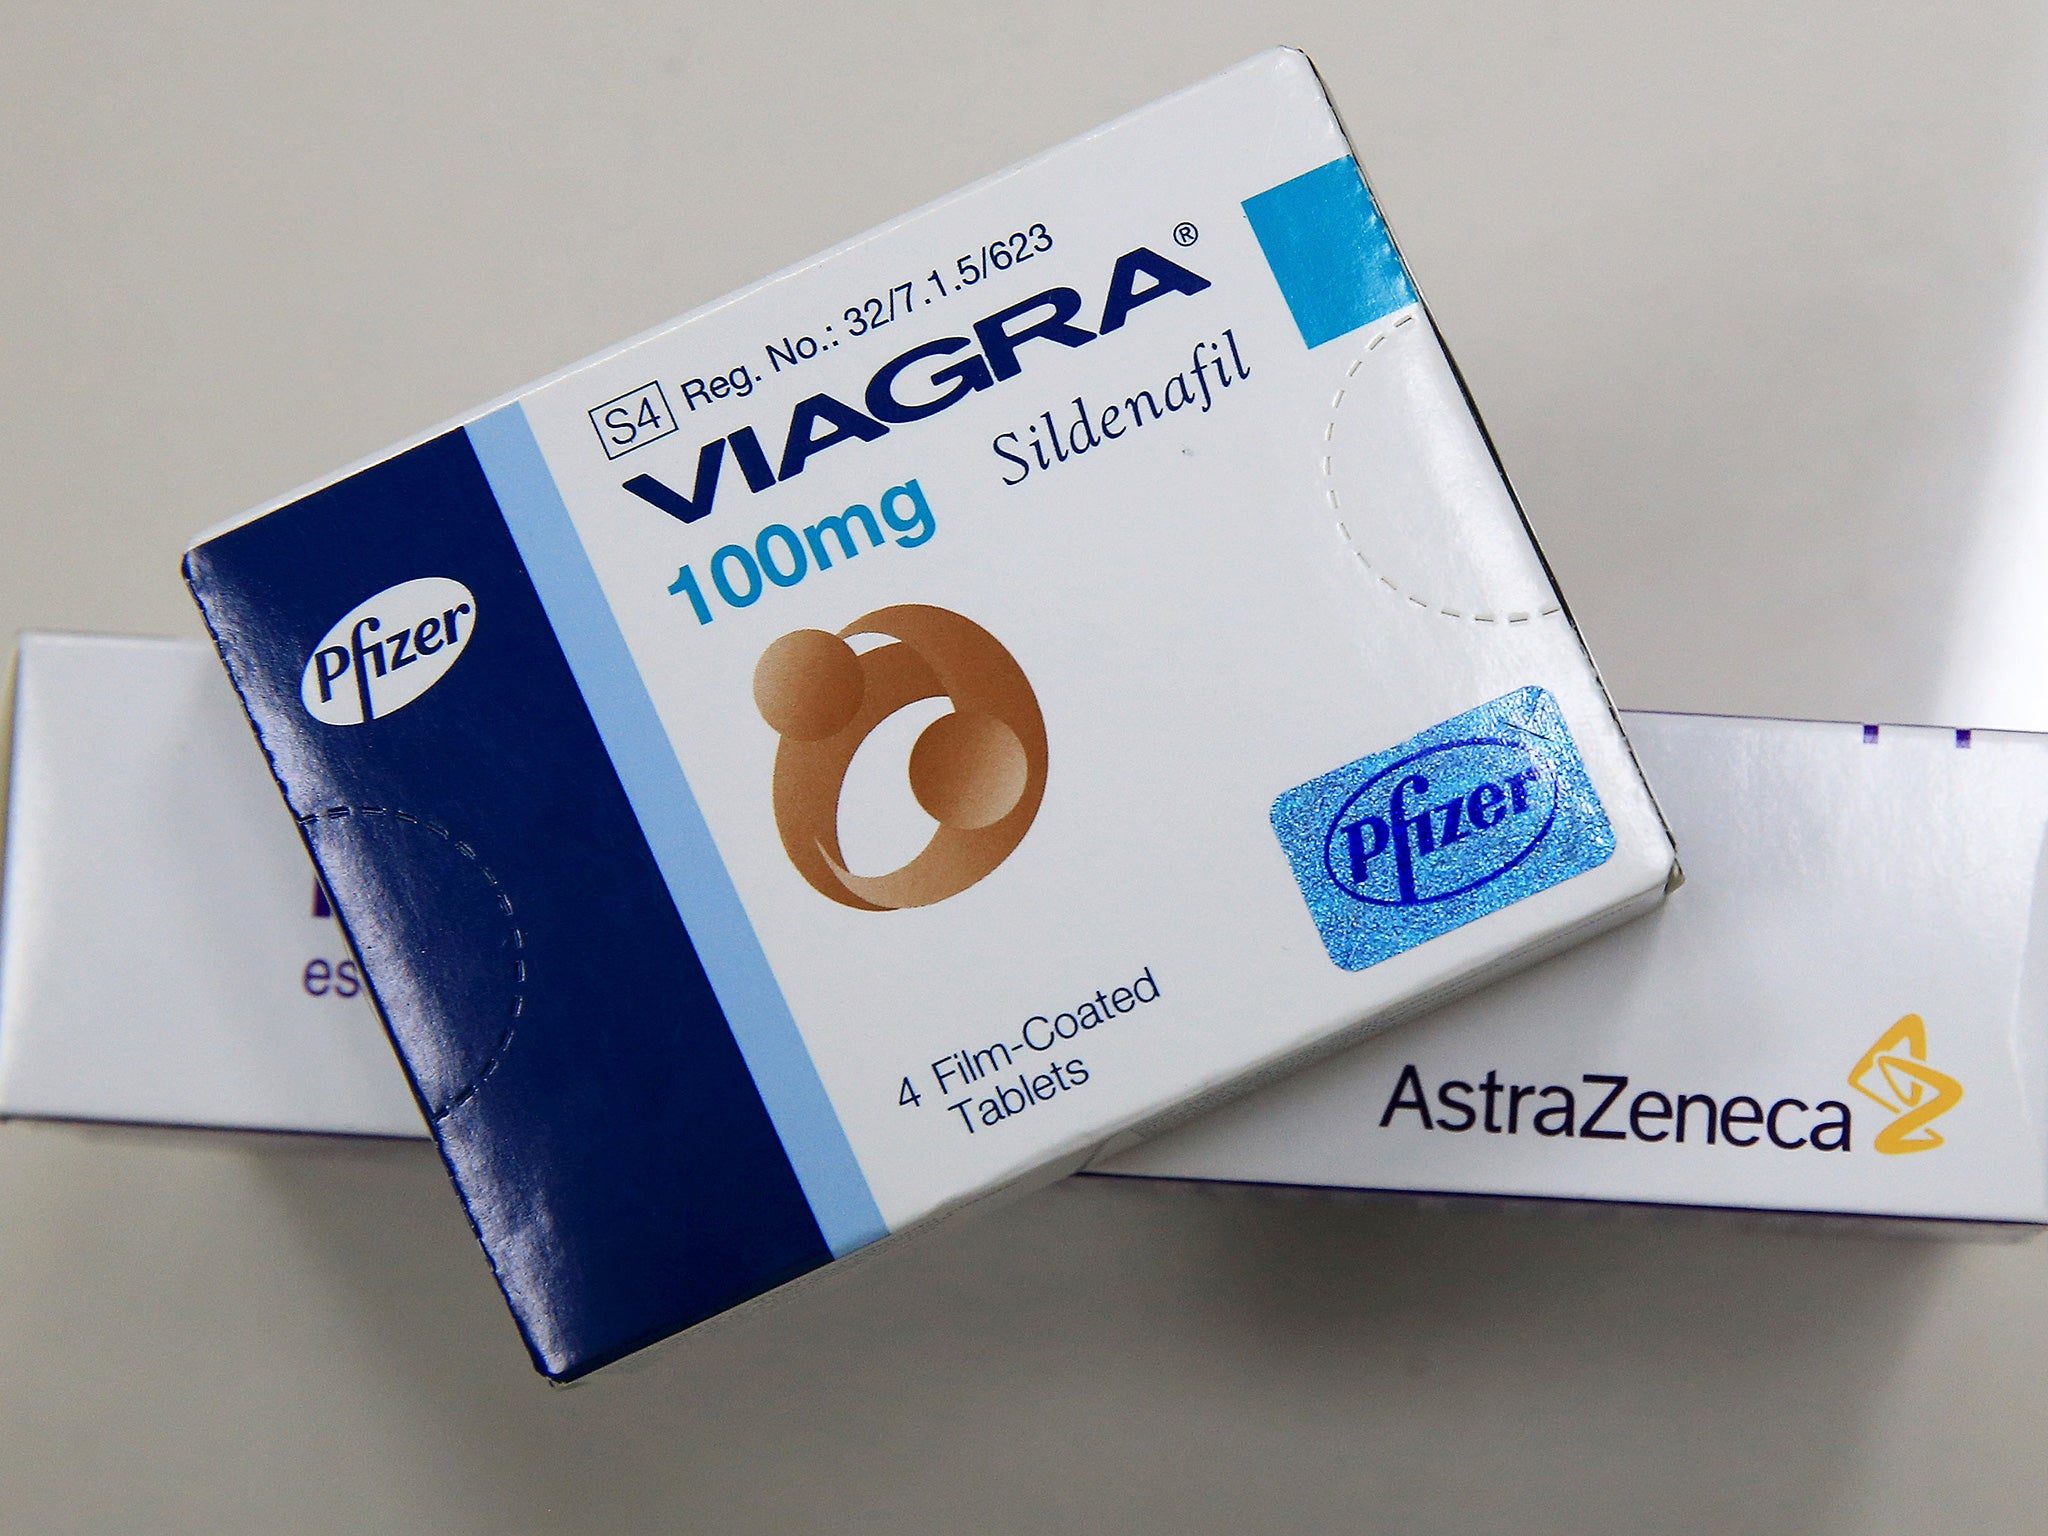 Viagra for daily use